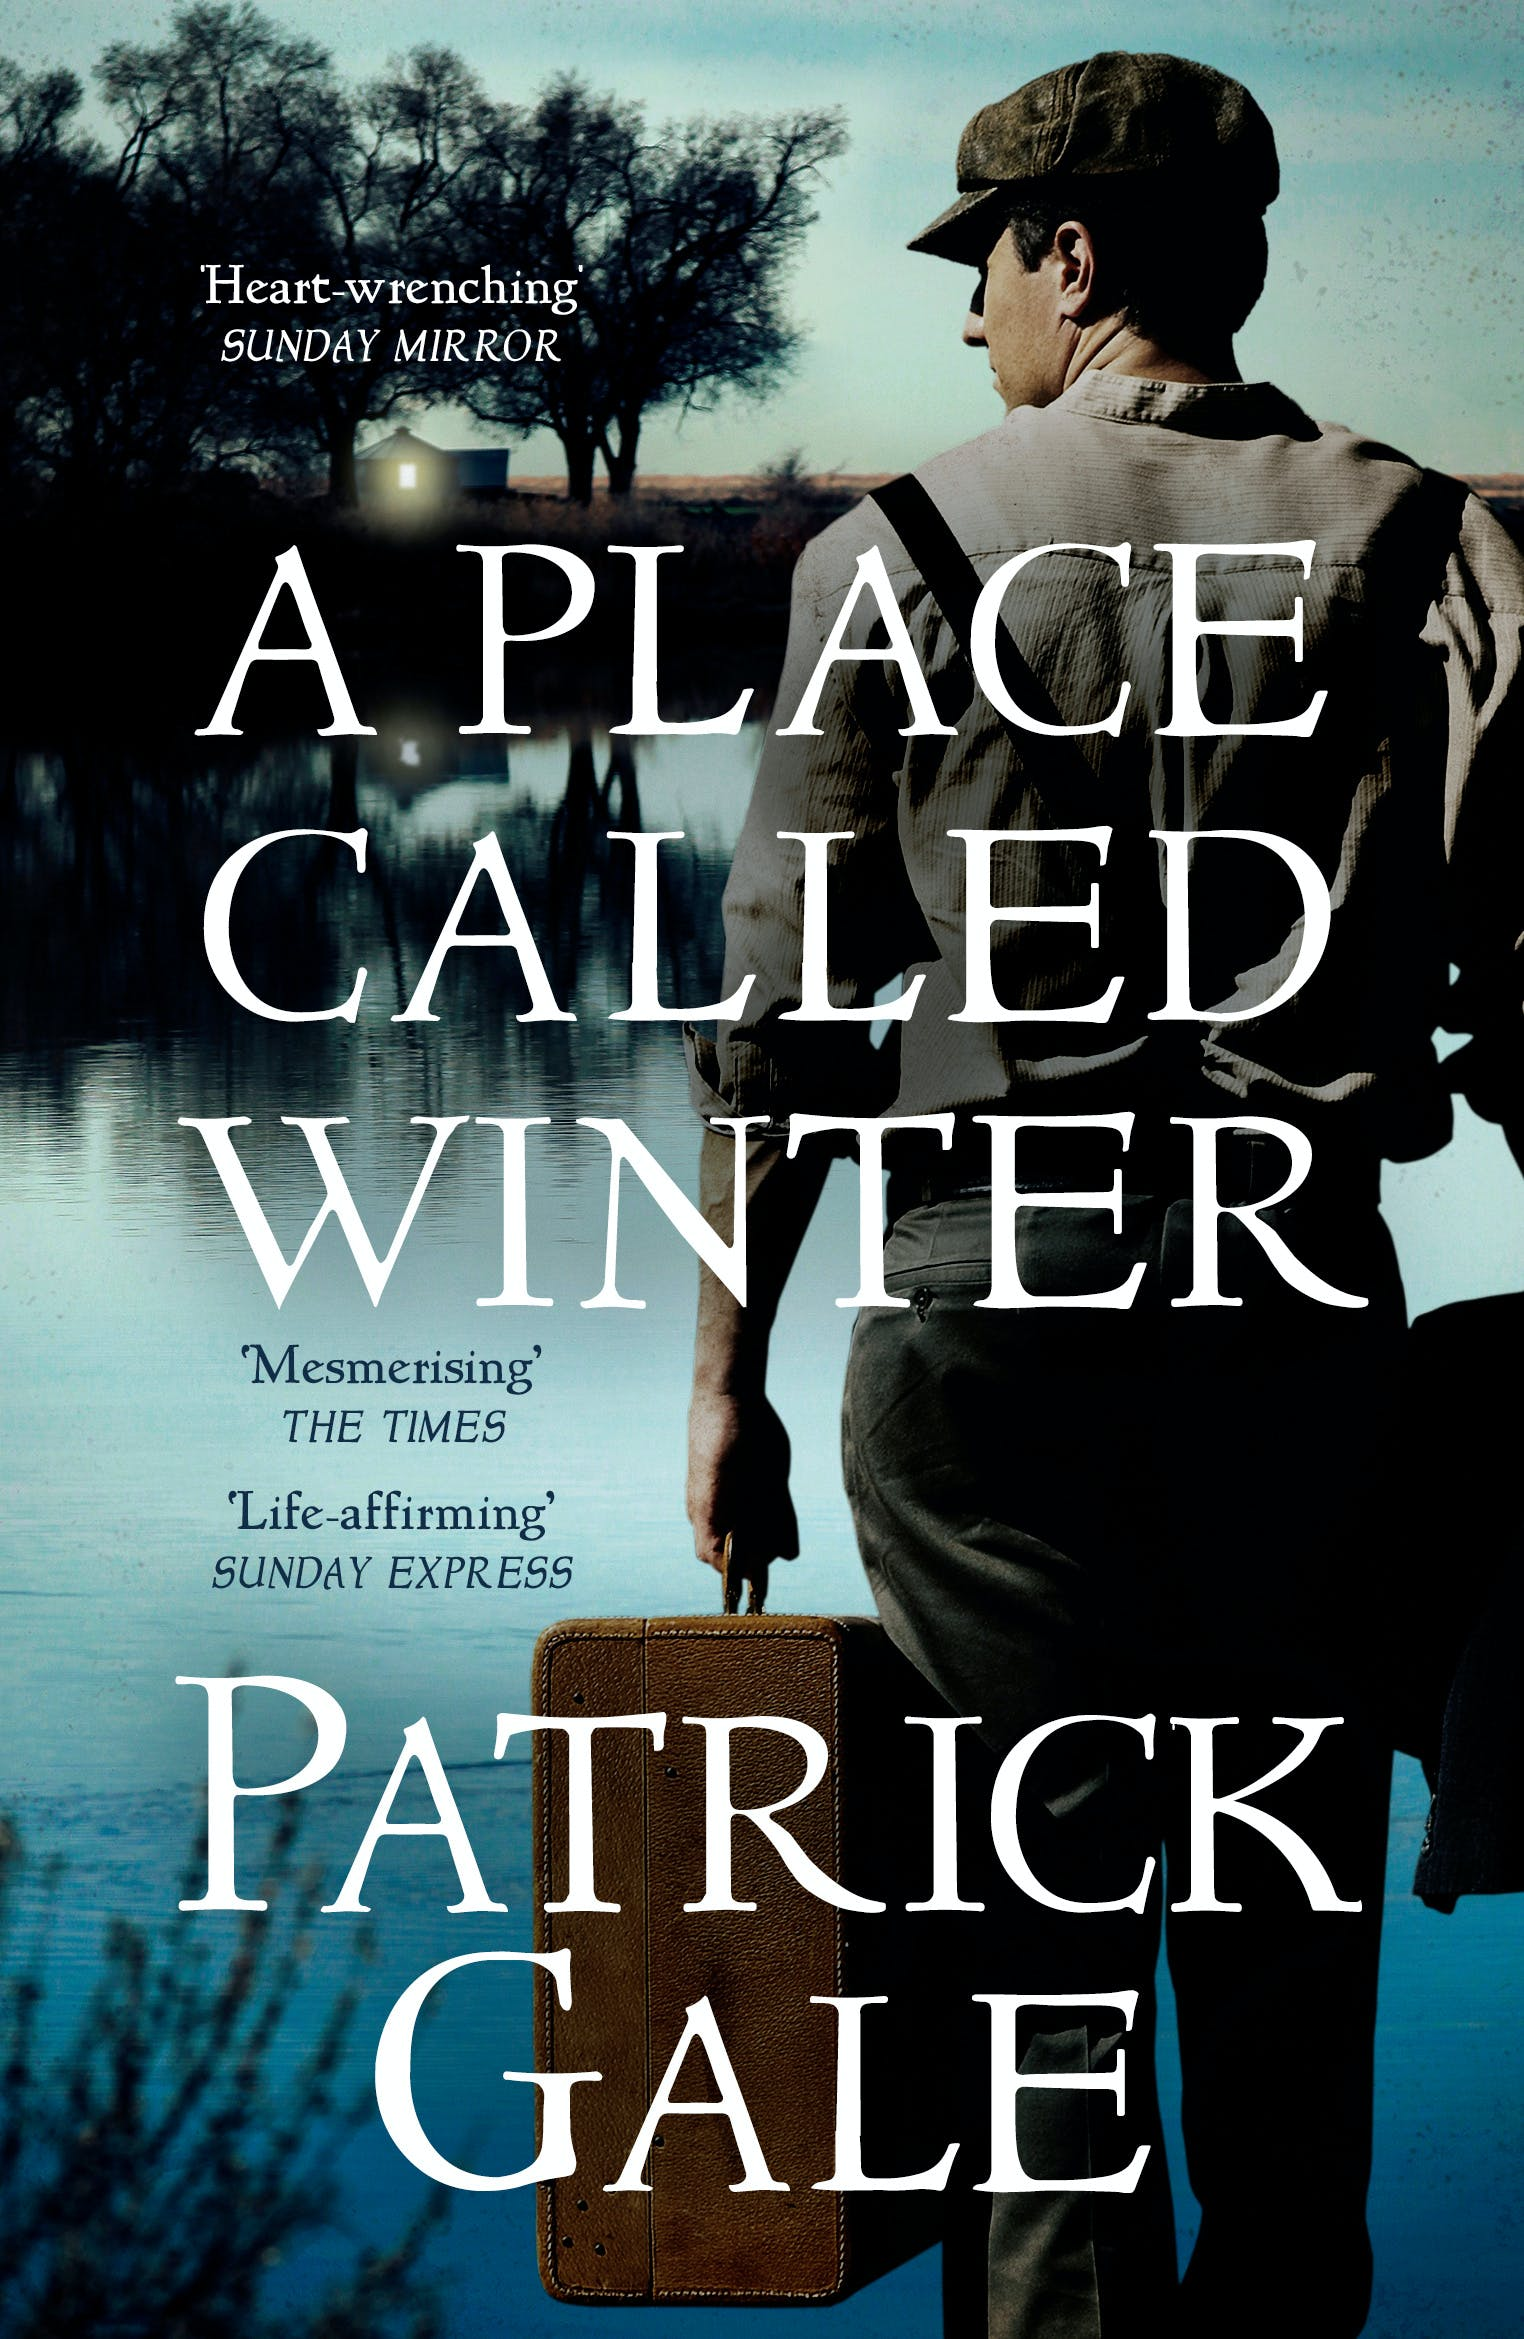 Download A Place Called Winter By Patrick Gale